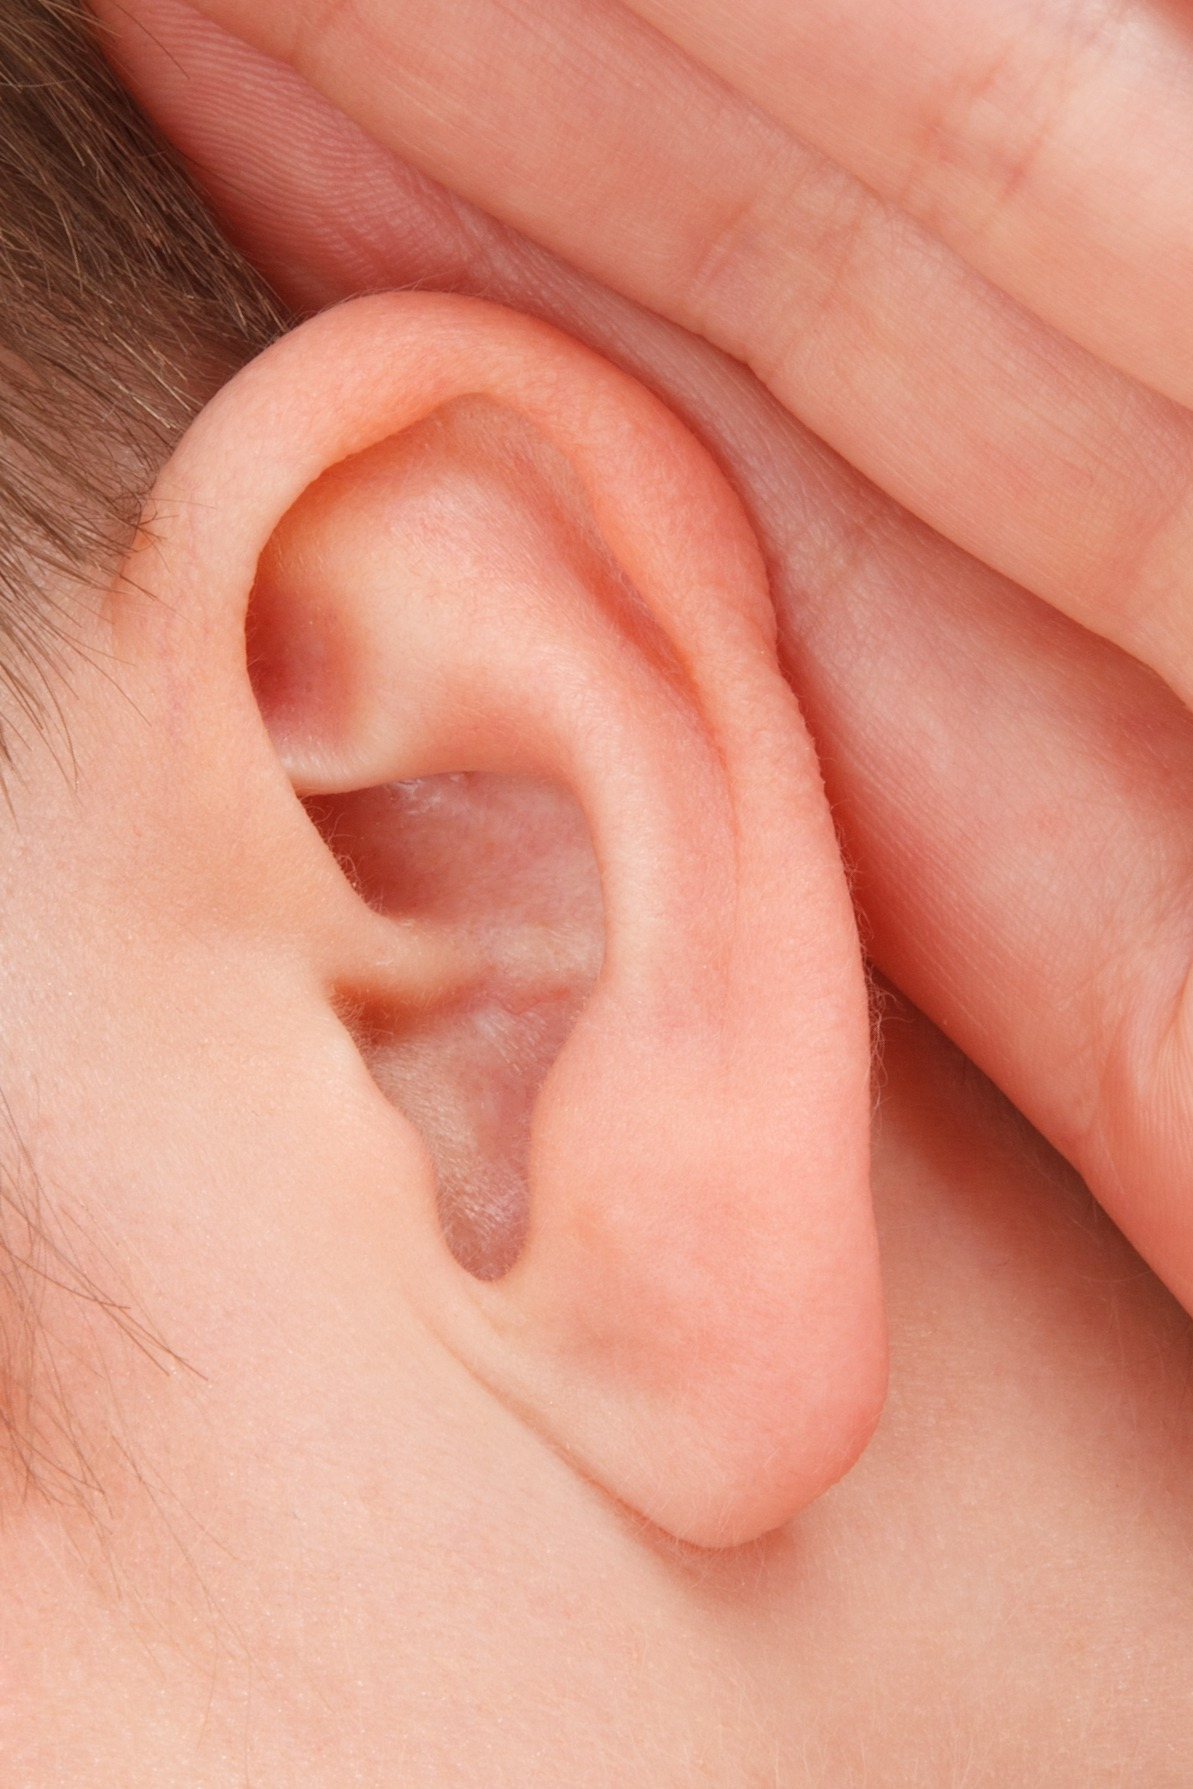 11 Proven Ways To Stop Ringing In The Ears